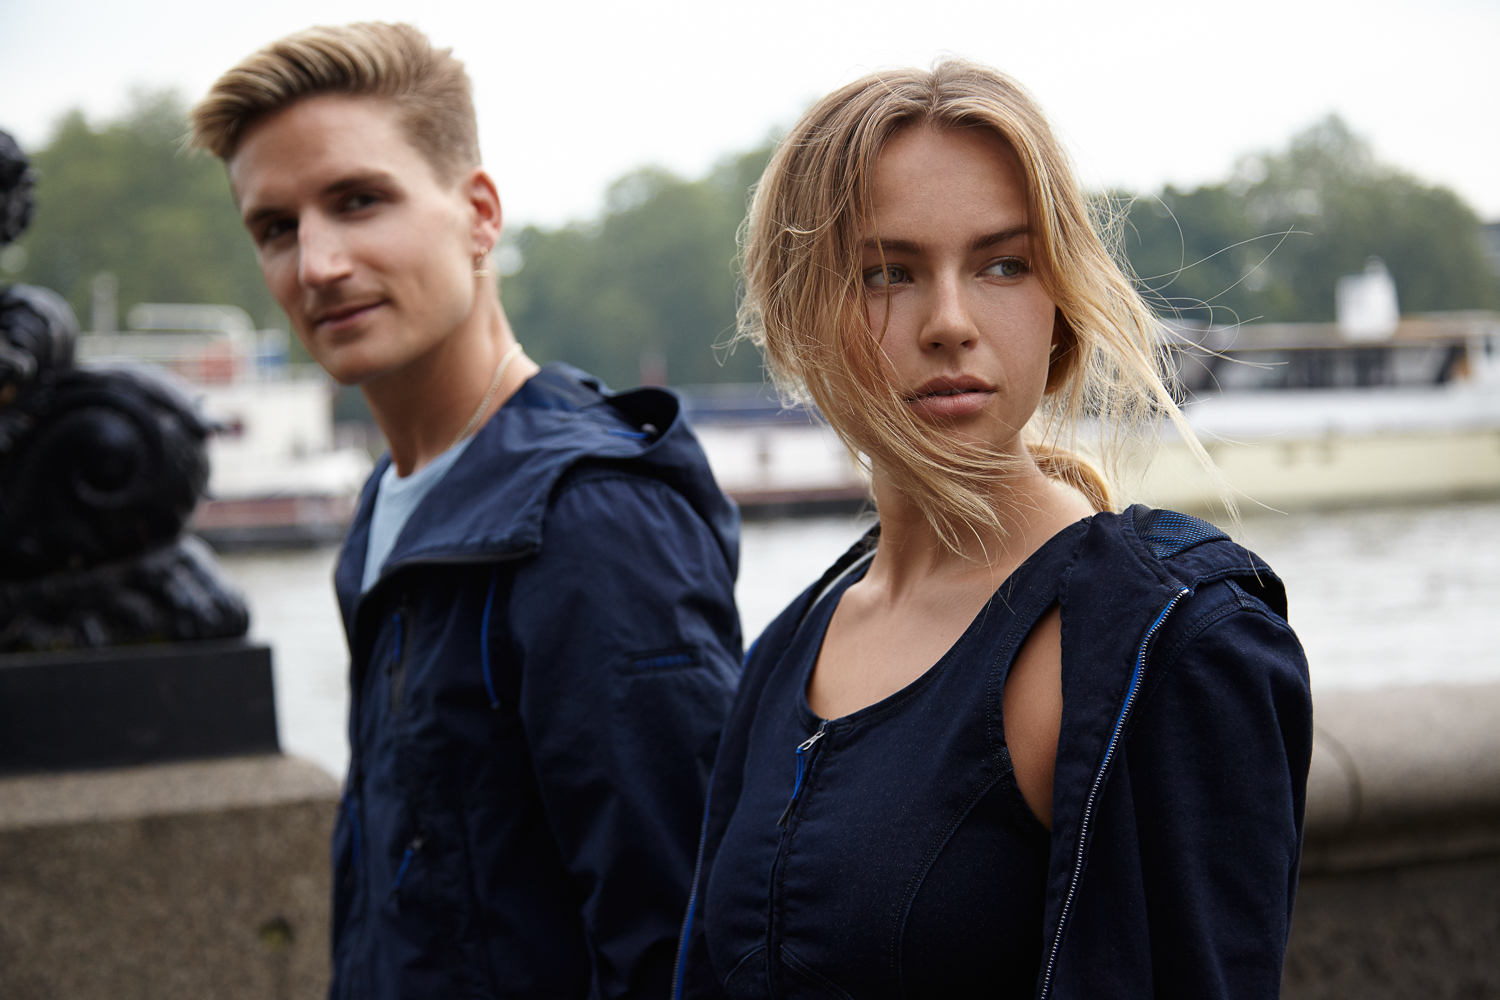 Oliver-Proudlock-and-Emma-Louise-Connolly-for-Diesel-by-Bart-Pajak-02